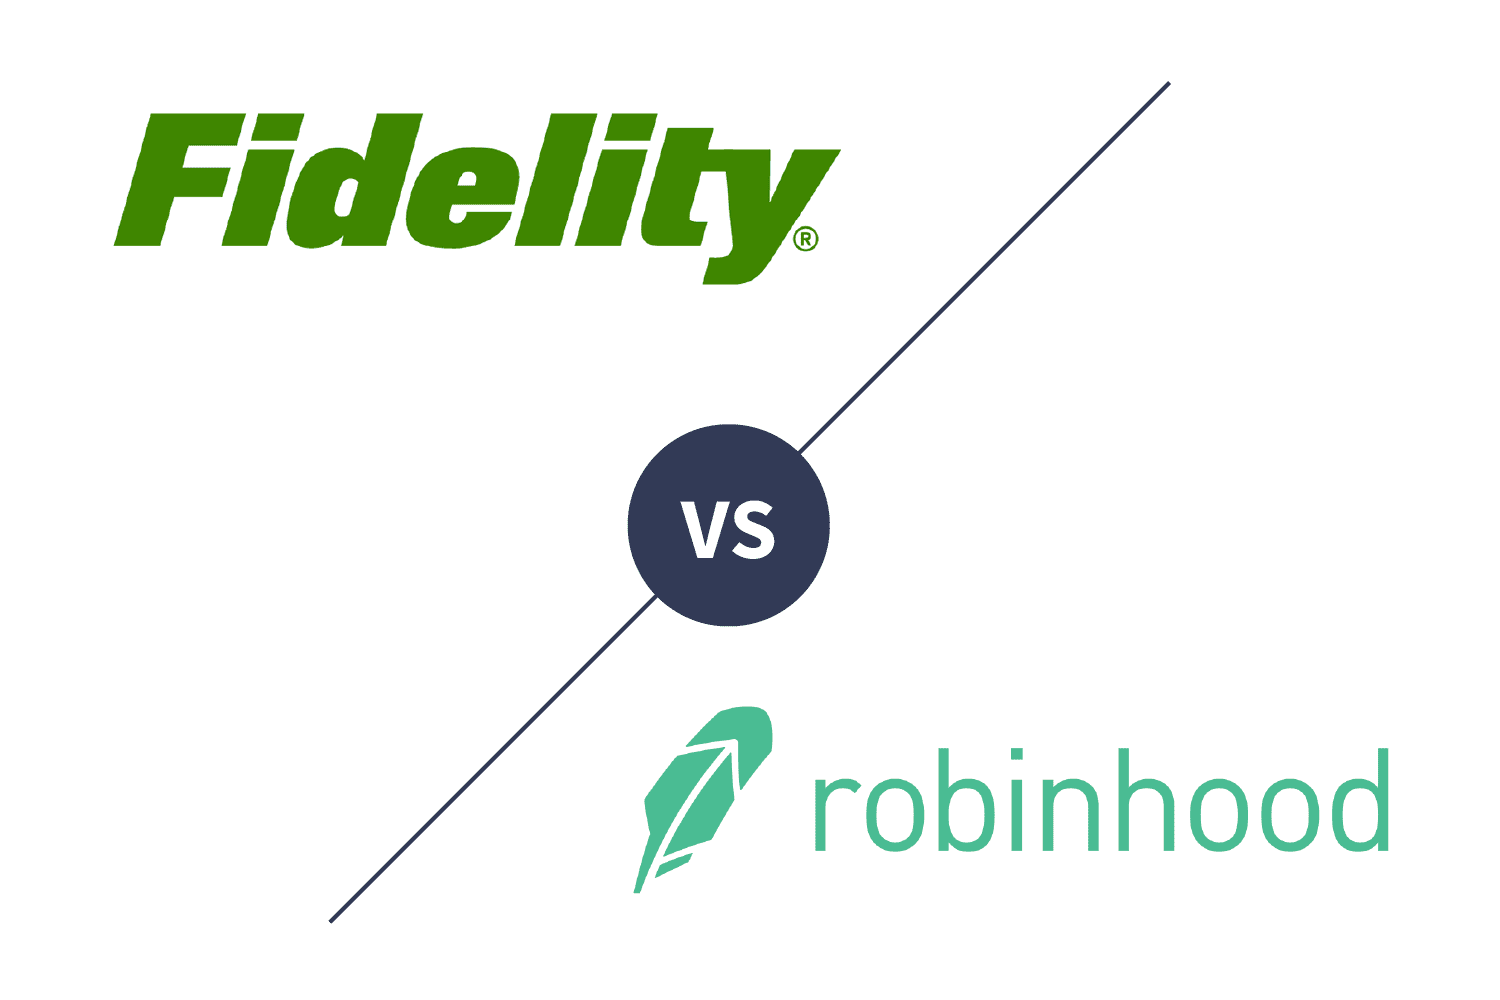 what cryptocurrencies can i buy using fidelity